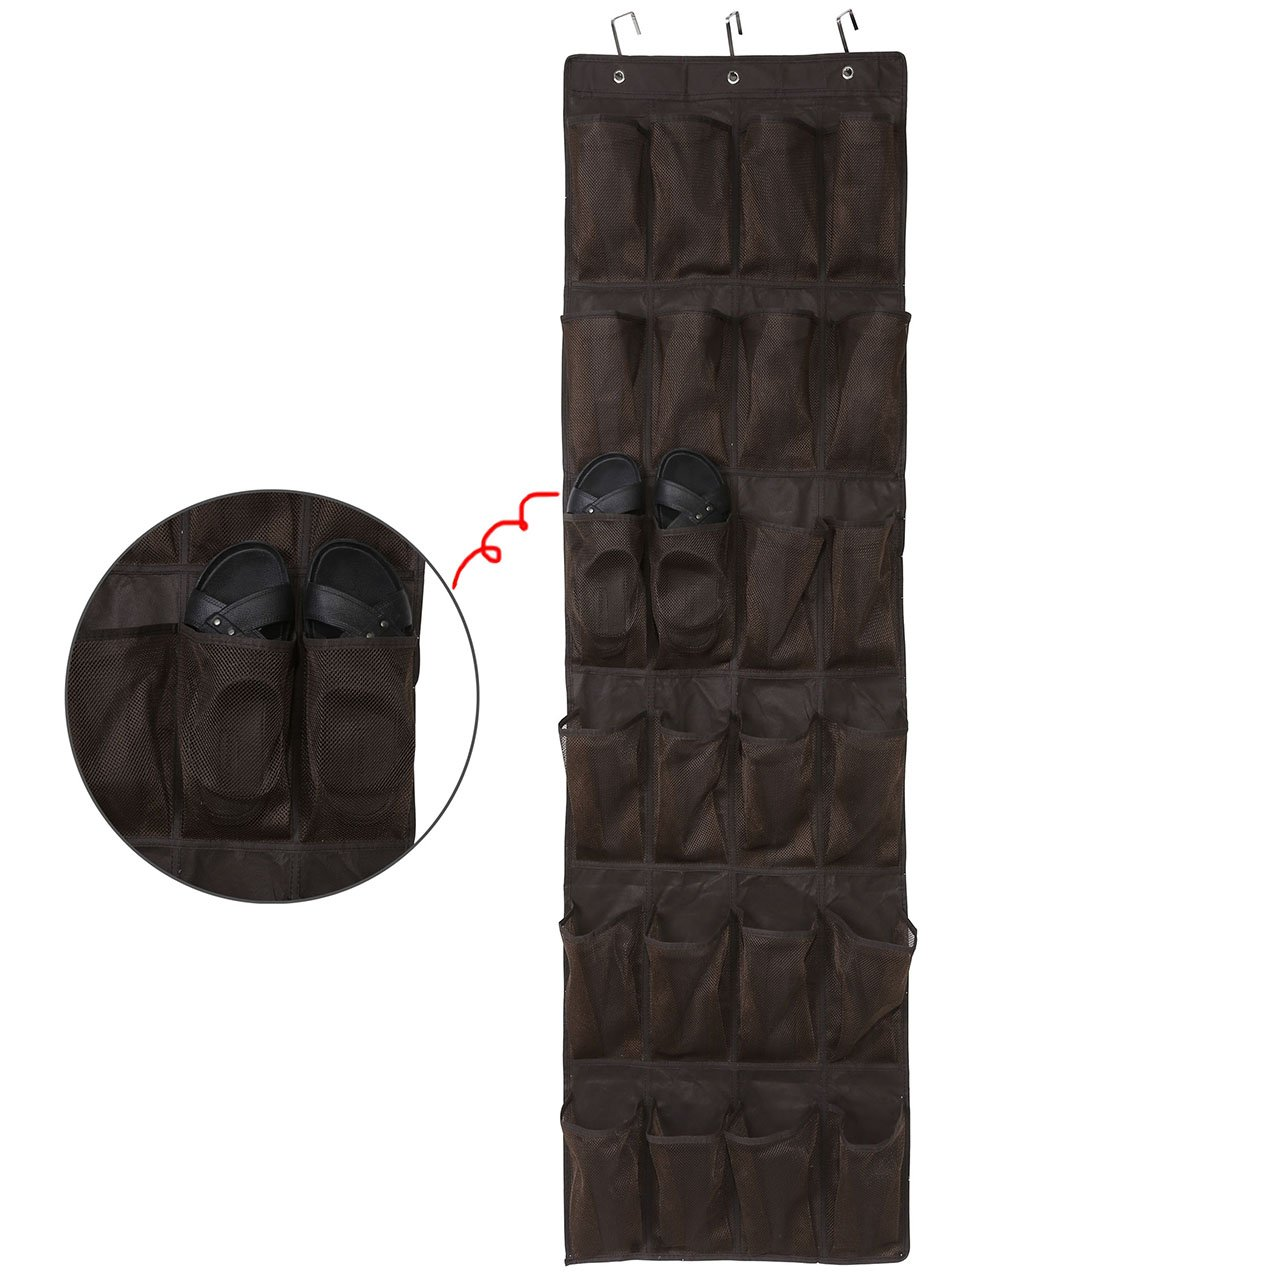 CozyCabin Over the Door Shoe Organizer - 24 Breathable Pockets, Closet Wall Hanging Shoe Storage with 3 Hooks (Brown)